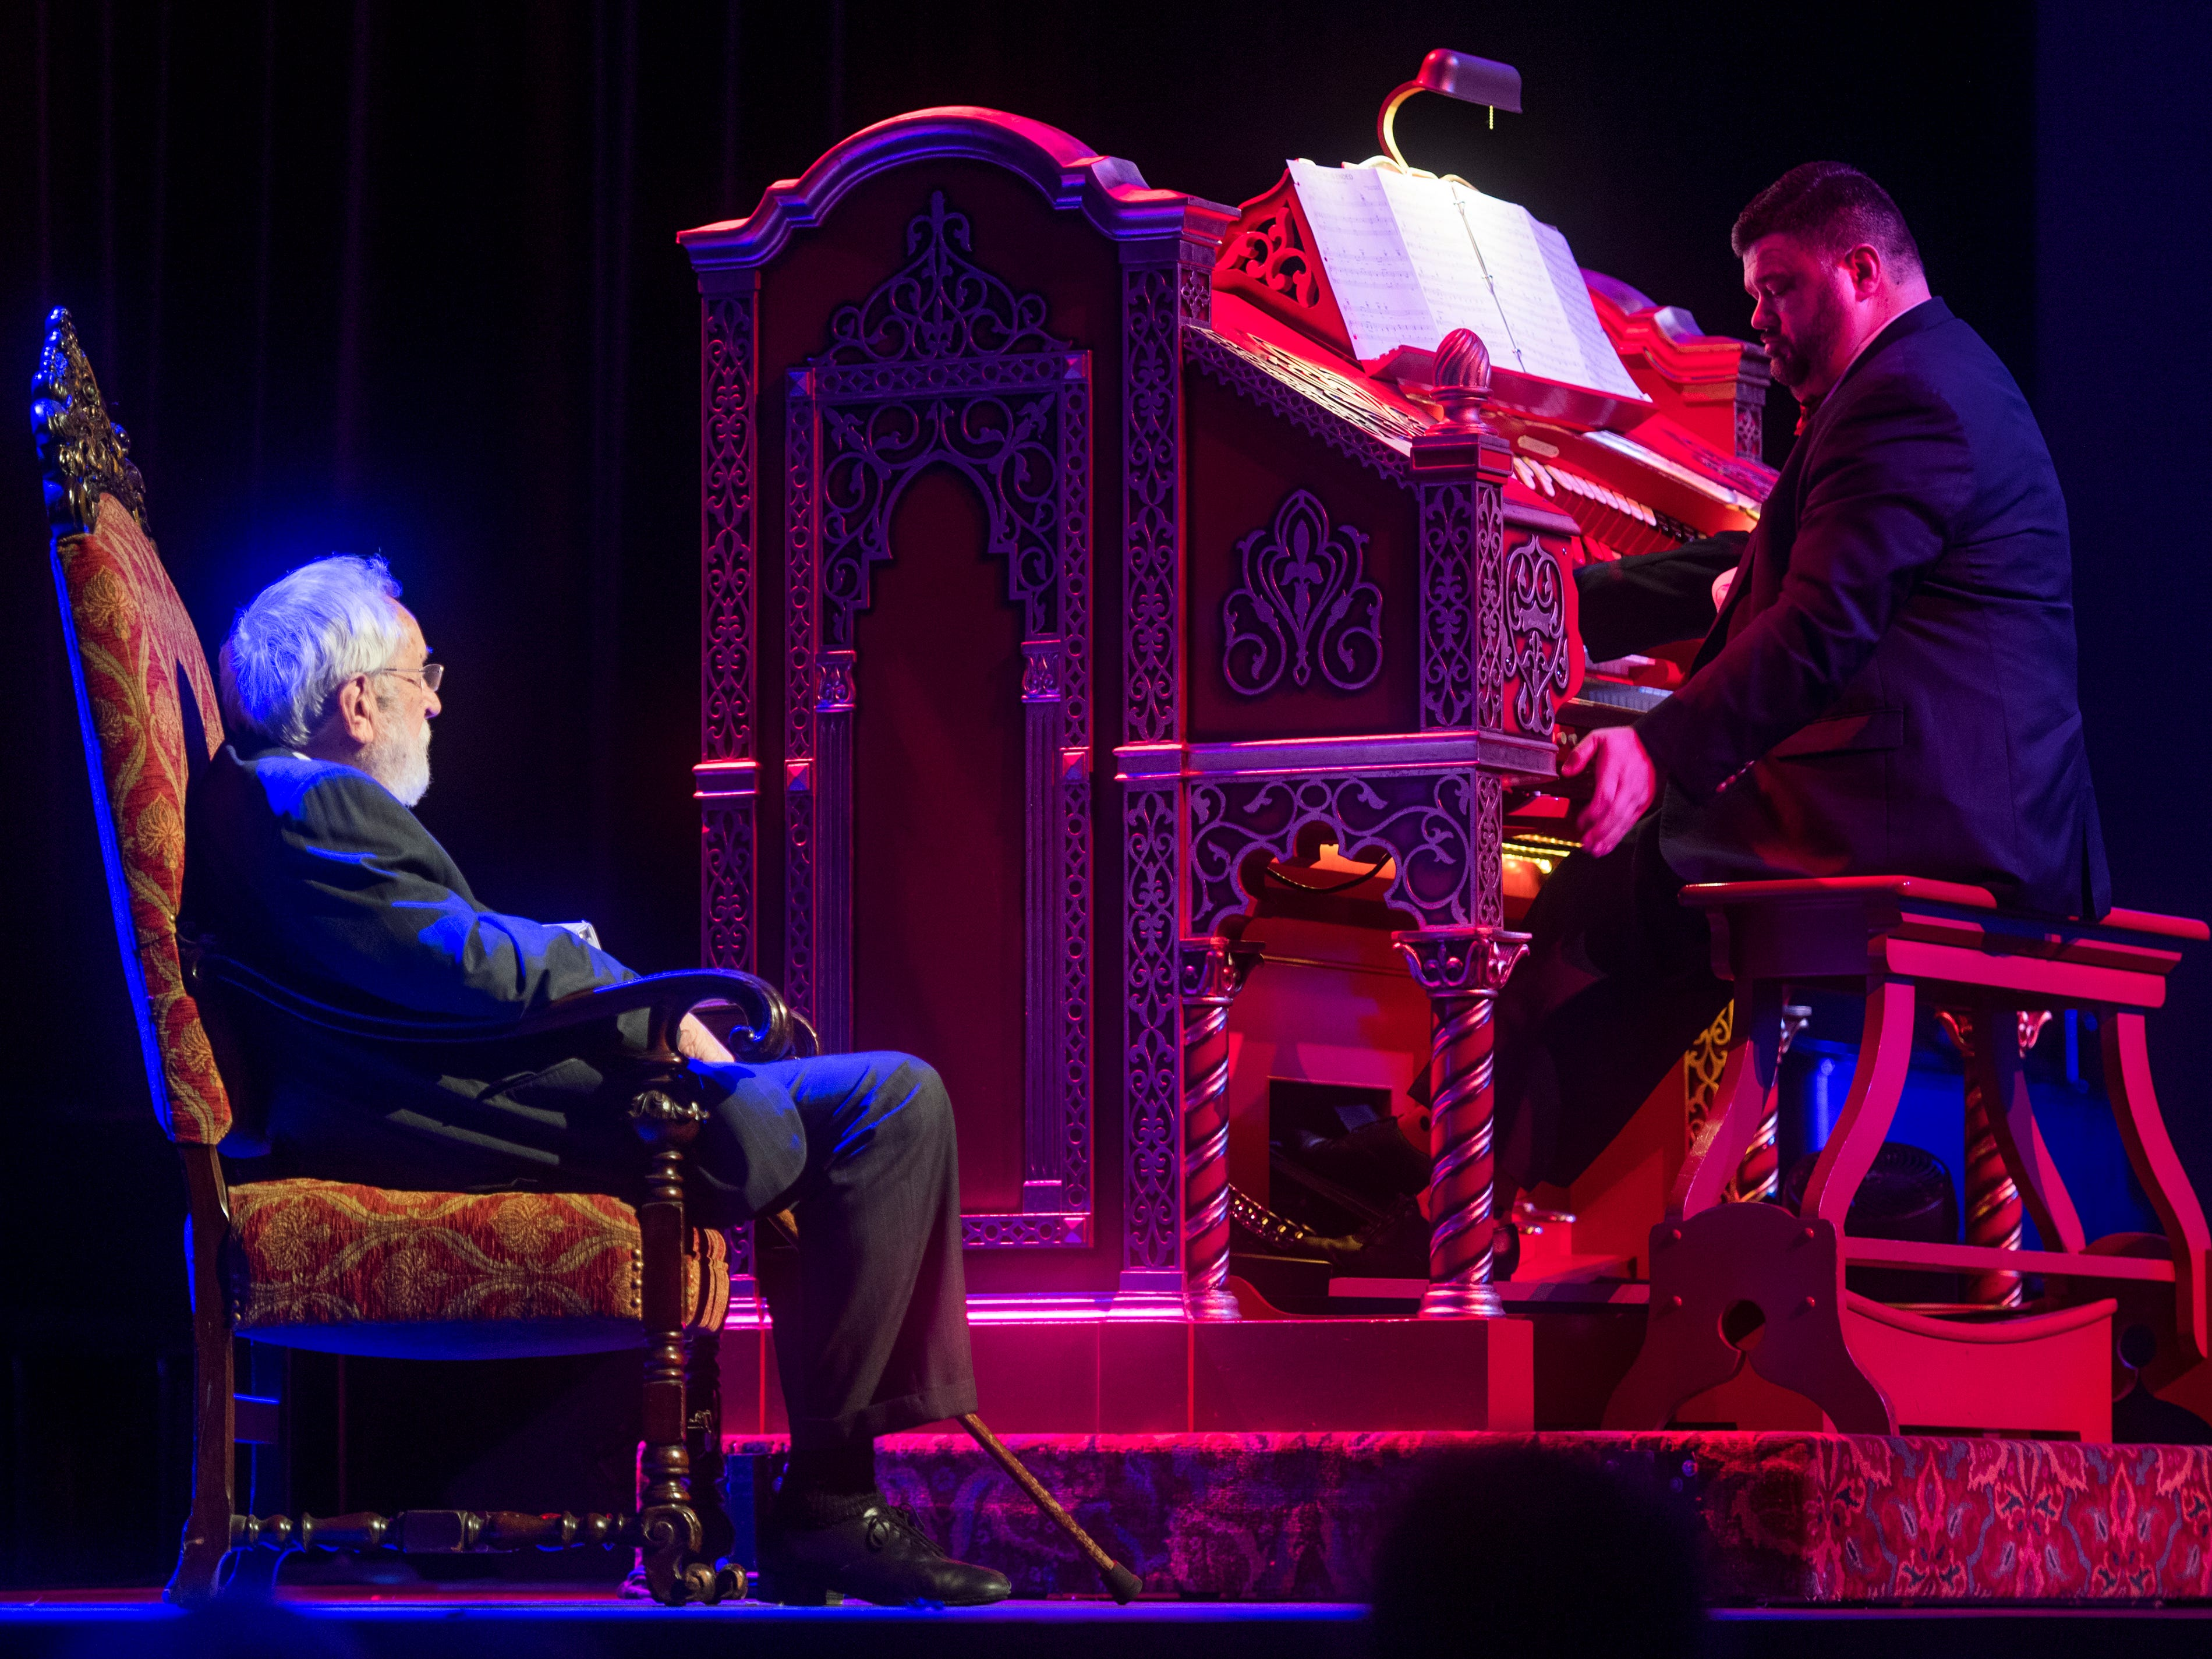 Freddie Brabson, who will assume the role of house organist at the Tennessee Theatre, plays the Mighty Wurlitzer organ as Dr. Bill Snyder, left, listens during a special Mighty Musical Monday celebrating Dr. Bill Snyder's retirement at the downtown Knoxville theatre on Monday, October 1, 2018. This particular Mighty Musical Monday also landed on the Tennessee Theatre's 90th anniversary.